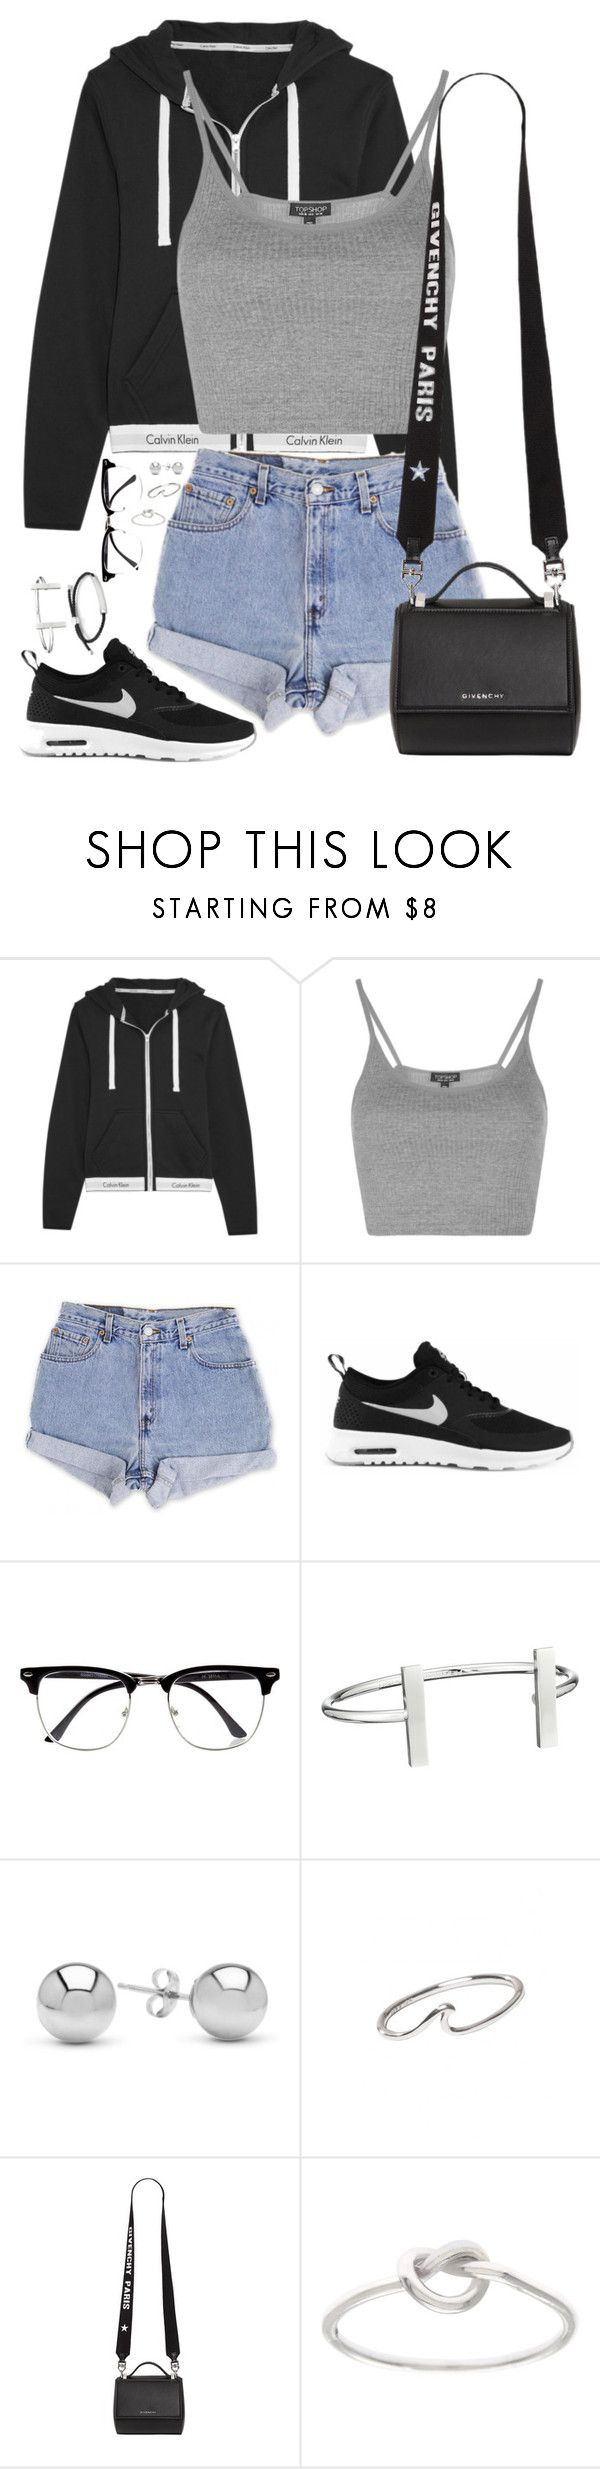 """Untitled #21"" by stylesbyer ❤ liked on Polyvore featuring Calvin Klein Underwear, Topshop, Levi's, NIKE, River Island, French Connection, Jewelonfire, Givenchy, La Preciosa and Monica Vinader"